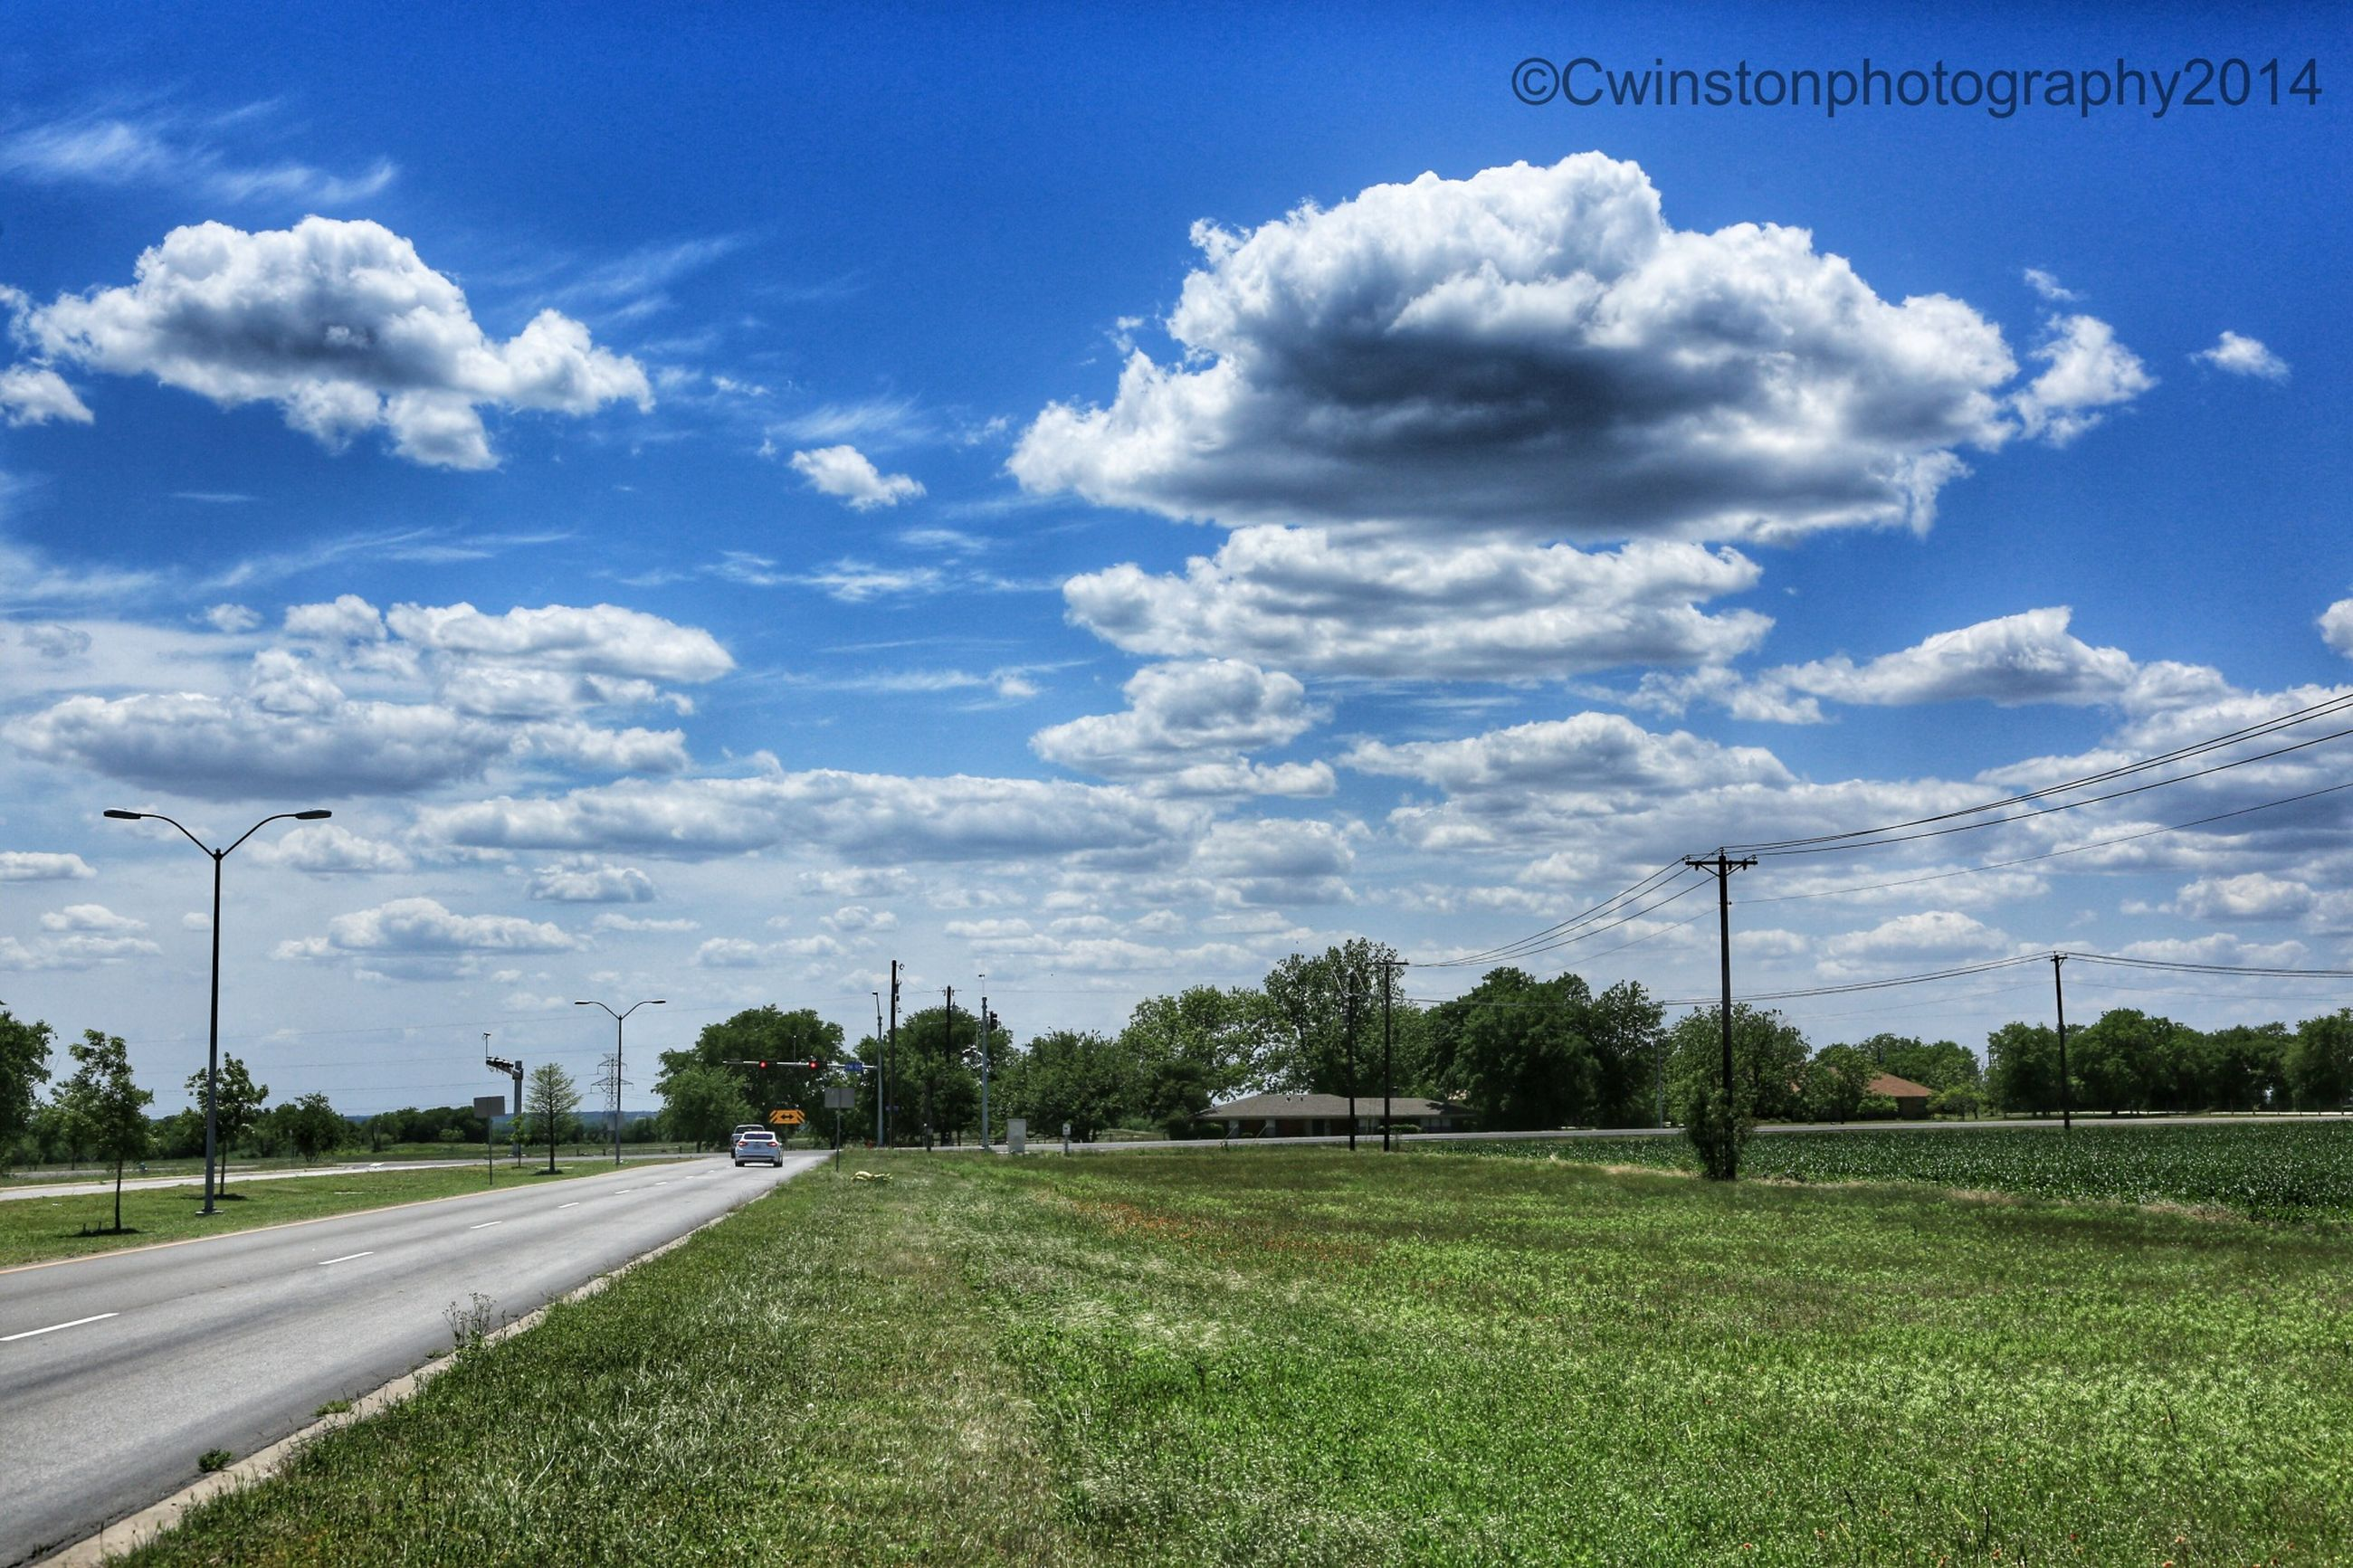 sky, field, grass, landscape, road, cloud - sky, transportation, blue, tranquility, tranquil scene, cloud, tree, the way forward, nature, rural scene, scenics, country road, green color, grassy, electricity pylon